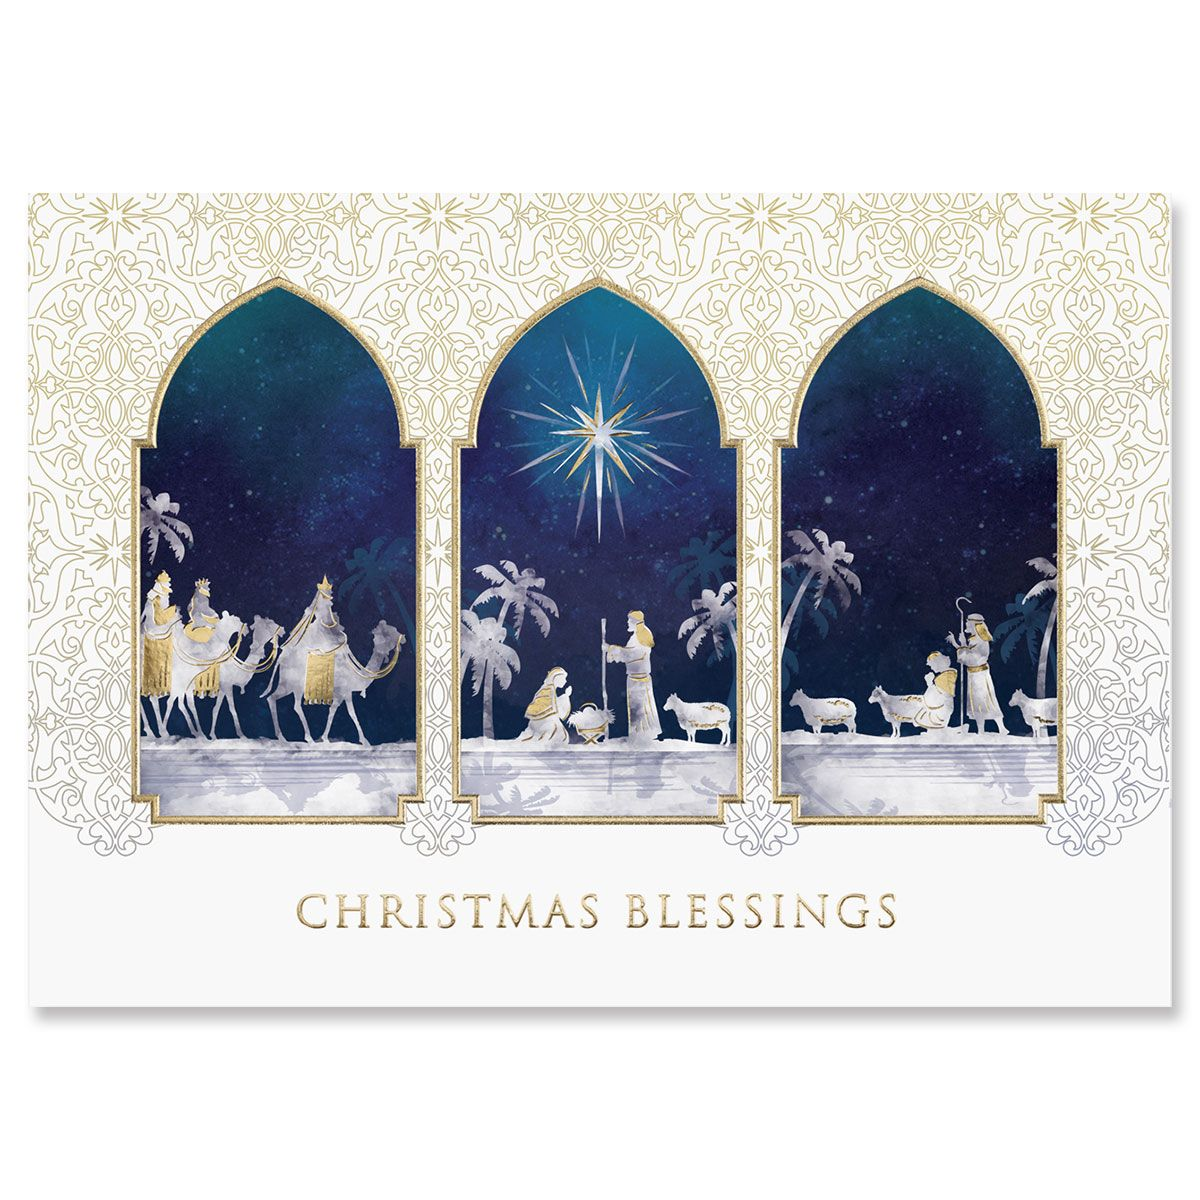 Blessings of Christmas Greeting Card